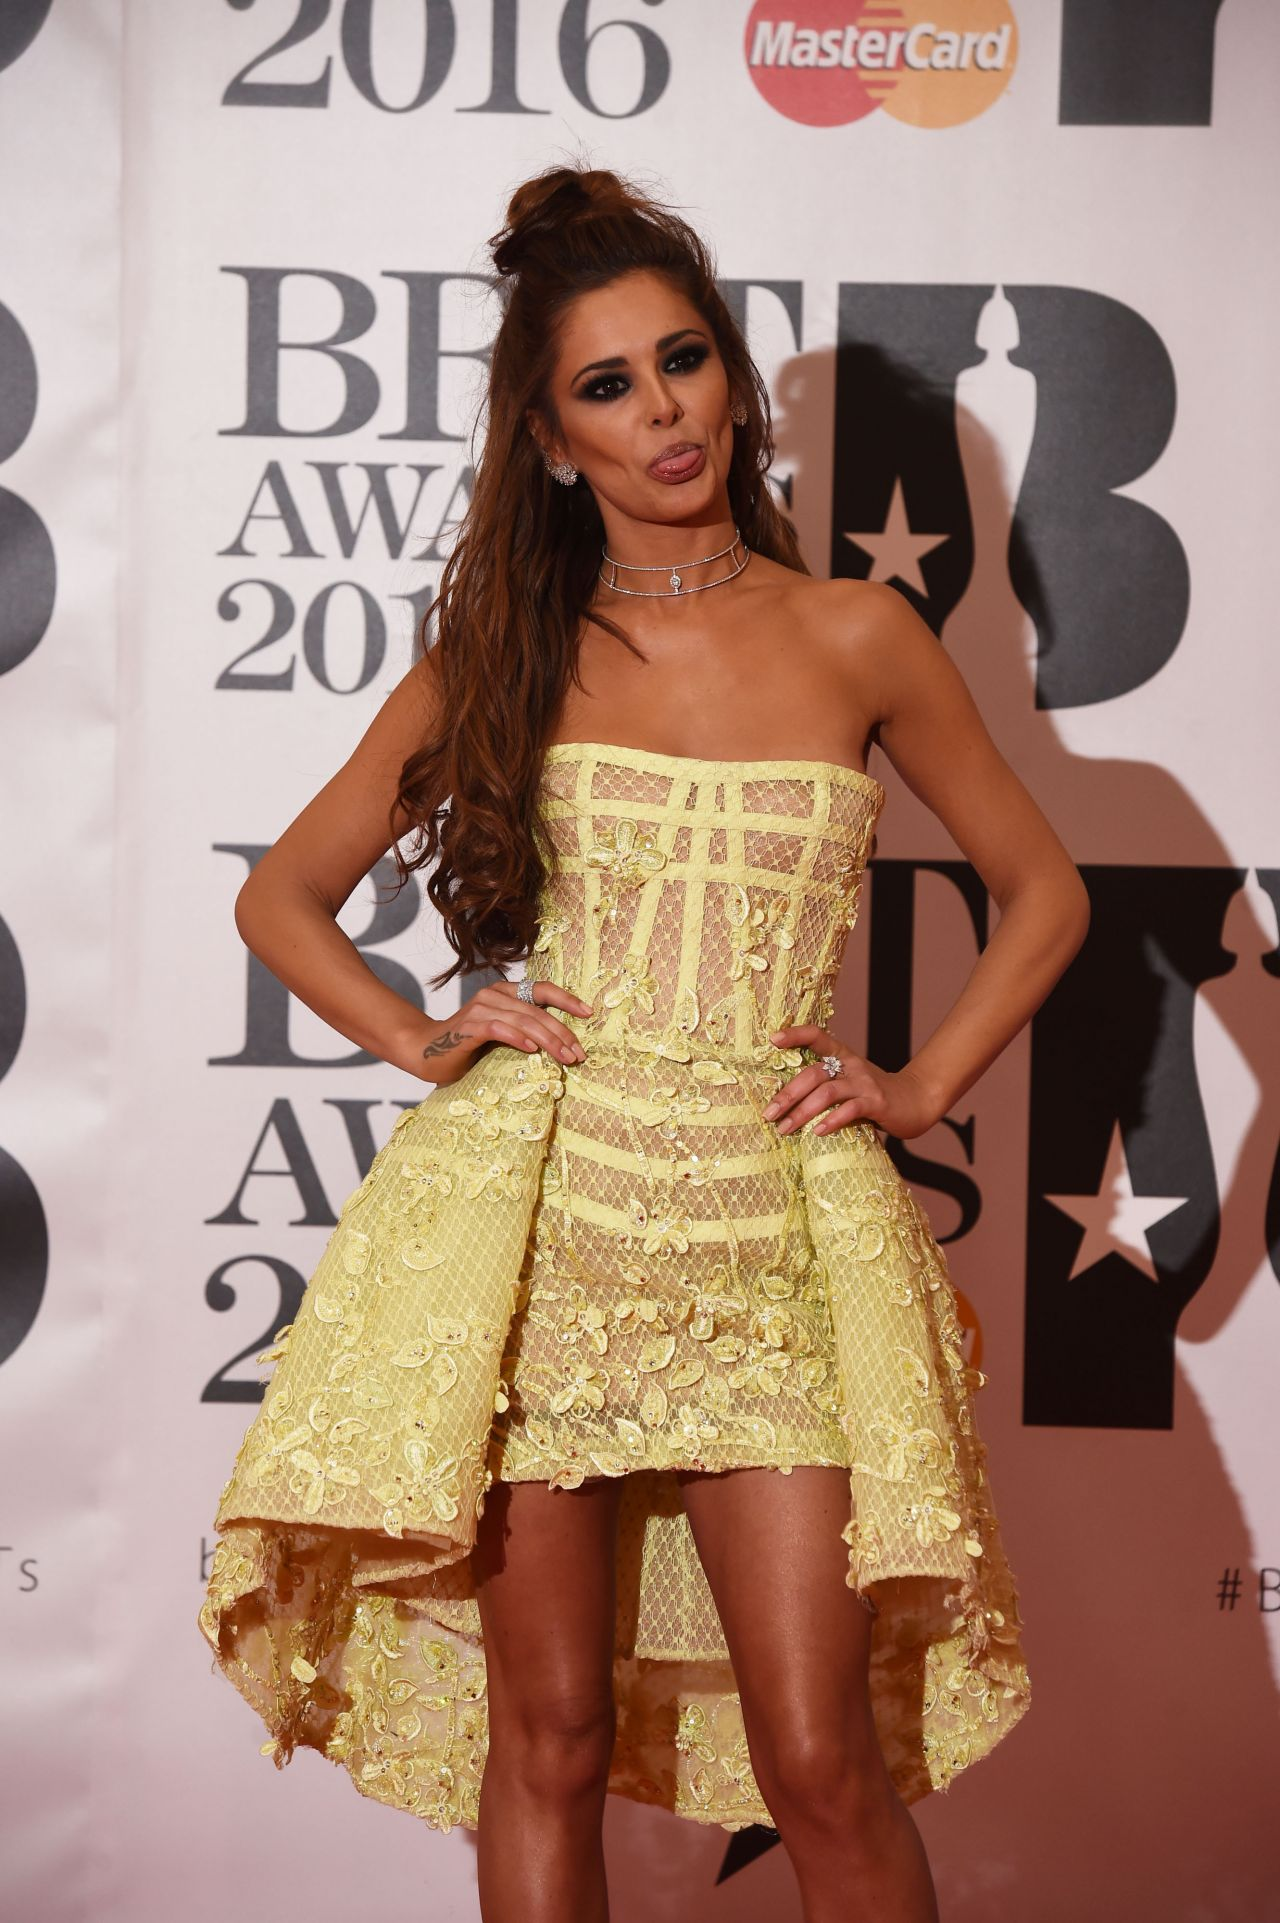 cheryl-fernandez-versini-brit-awards-2016-in-london-uk-2